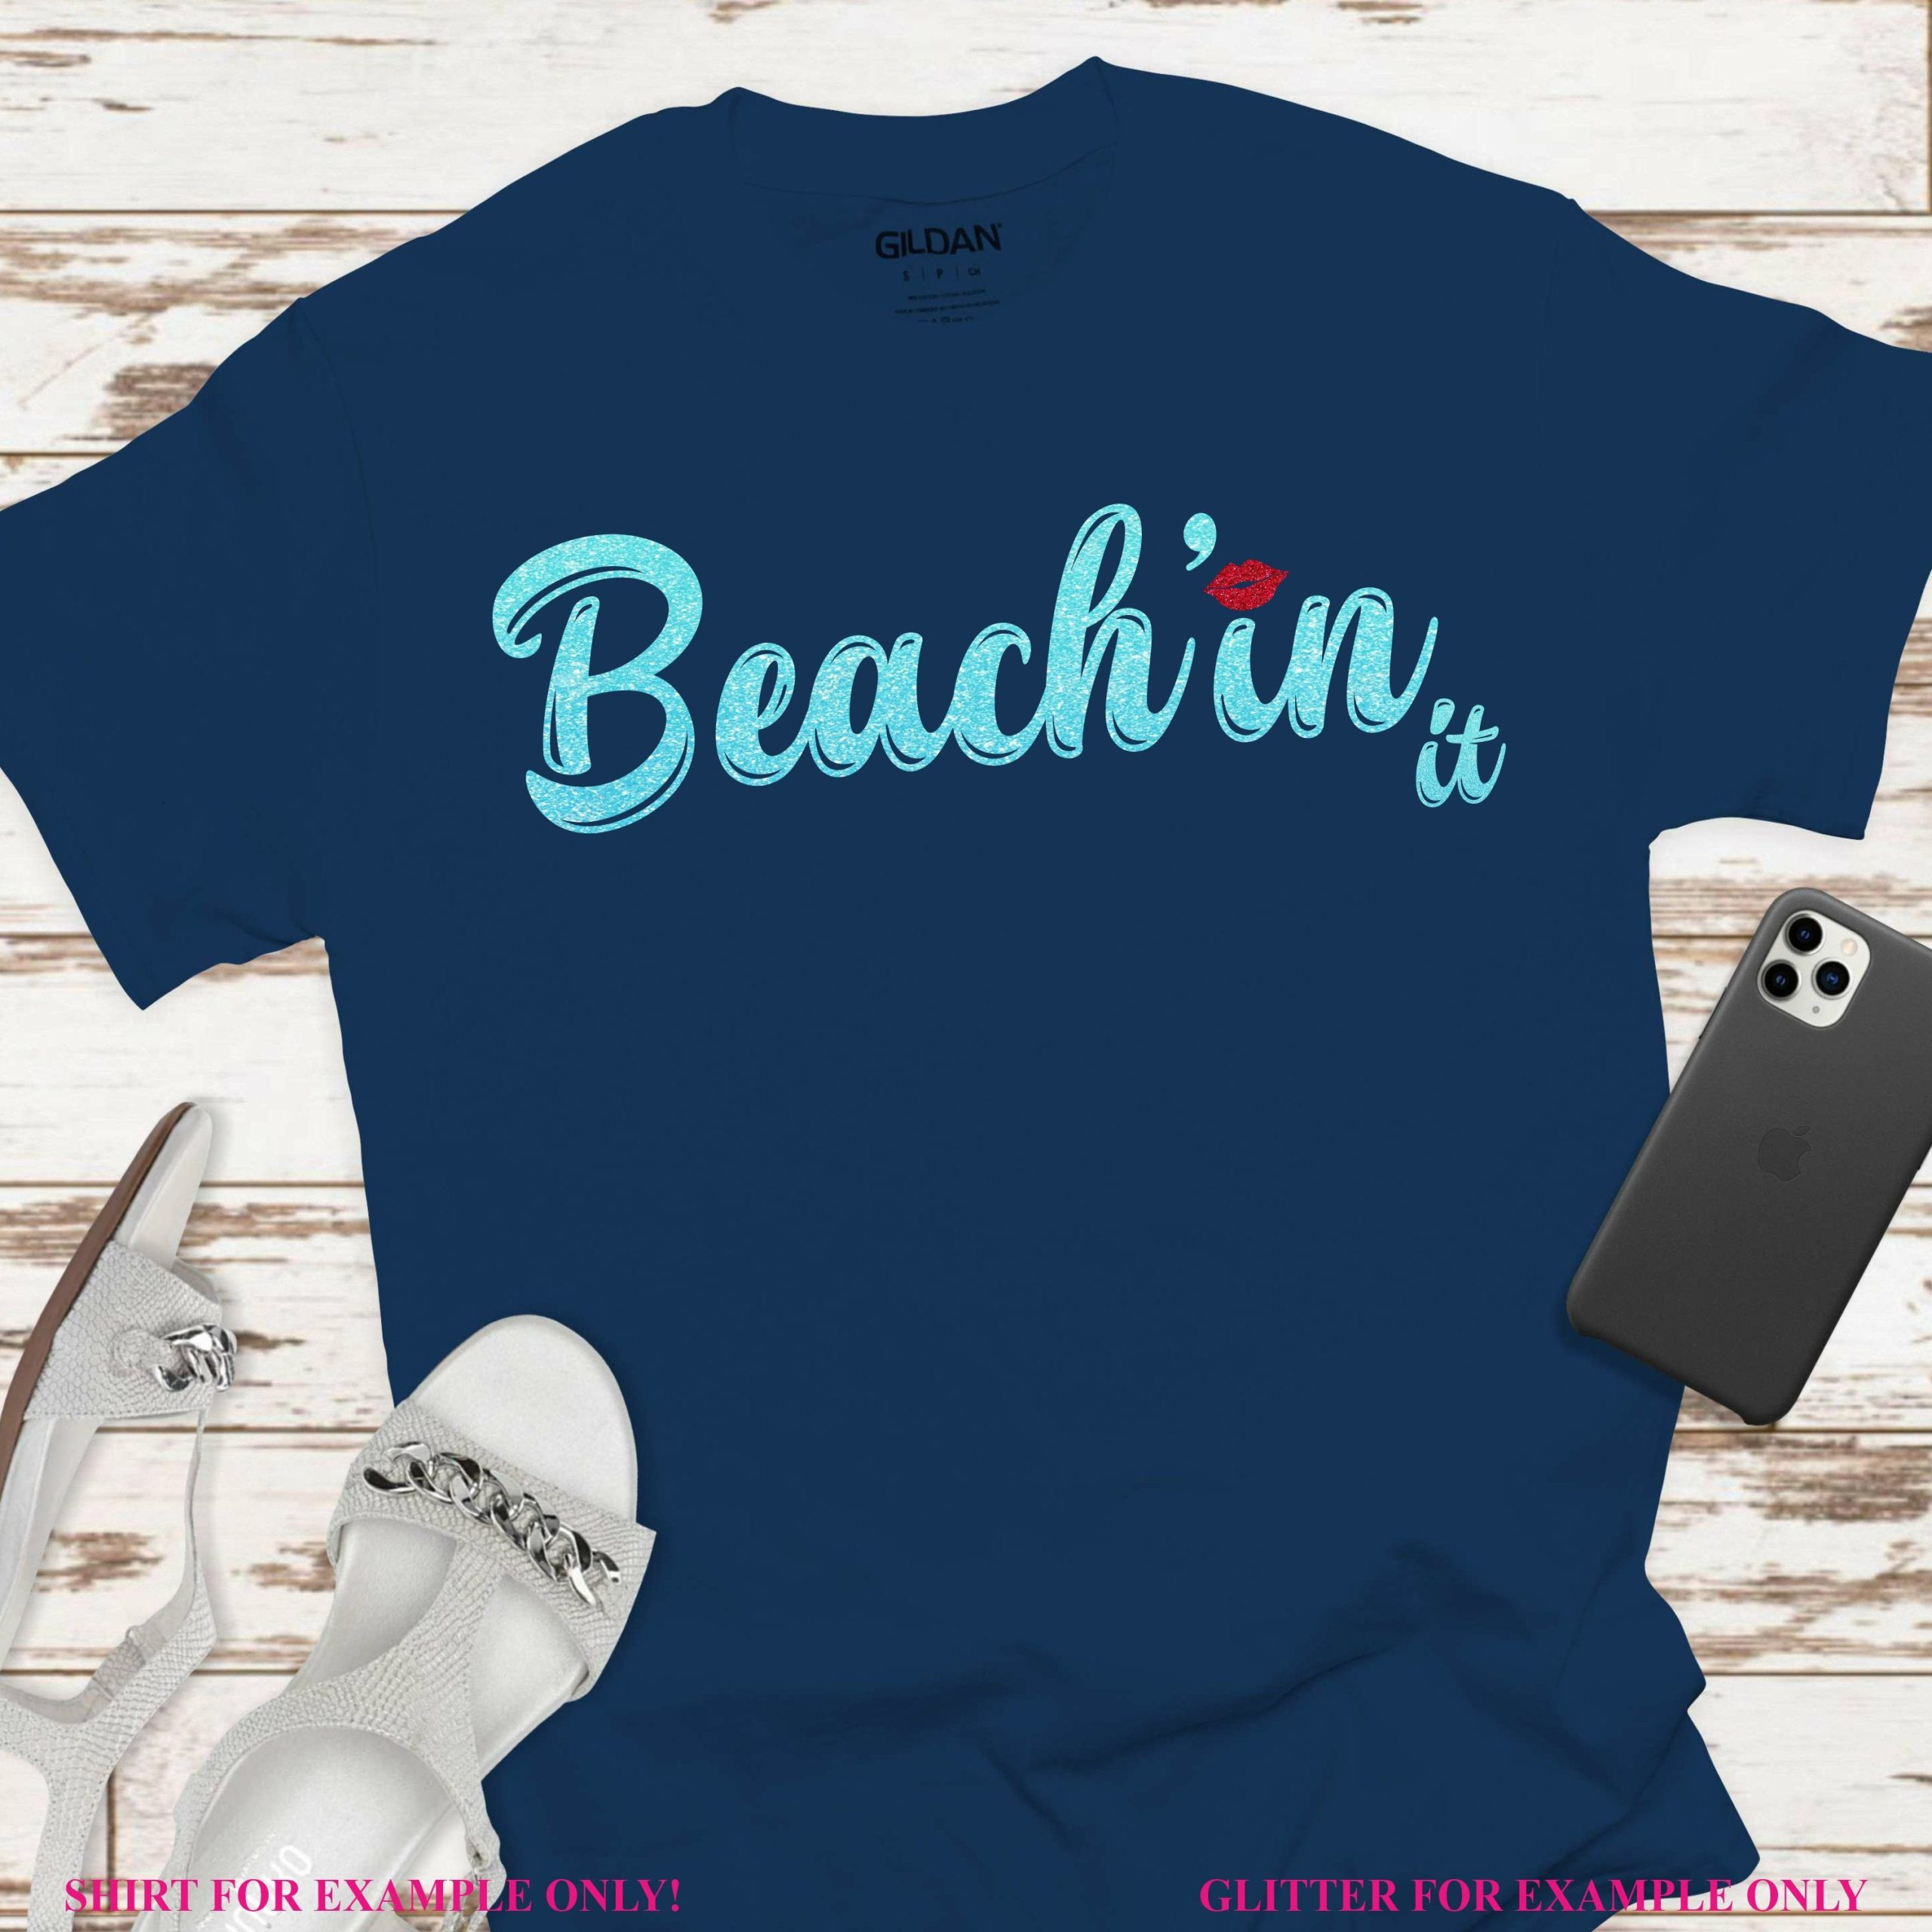 Beachin-it-svg-beach-svg-beachin-svg-beachy-svg-vacation-svg-tshirt-travel-adventure-svg-for-cricutsilhouette-cut-file-5ef78ae9